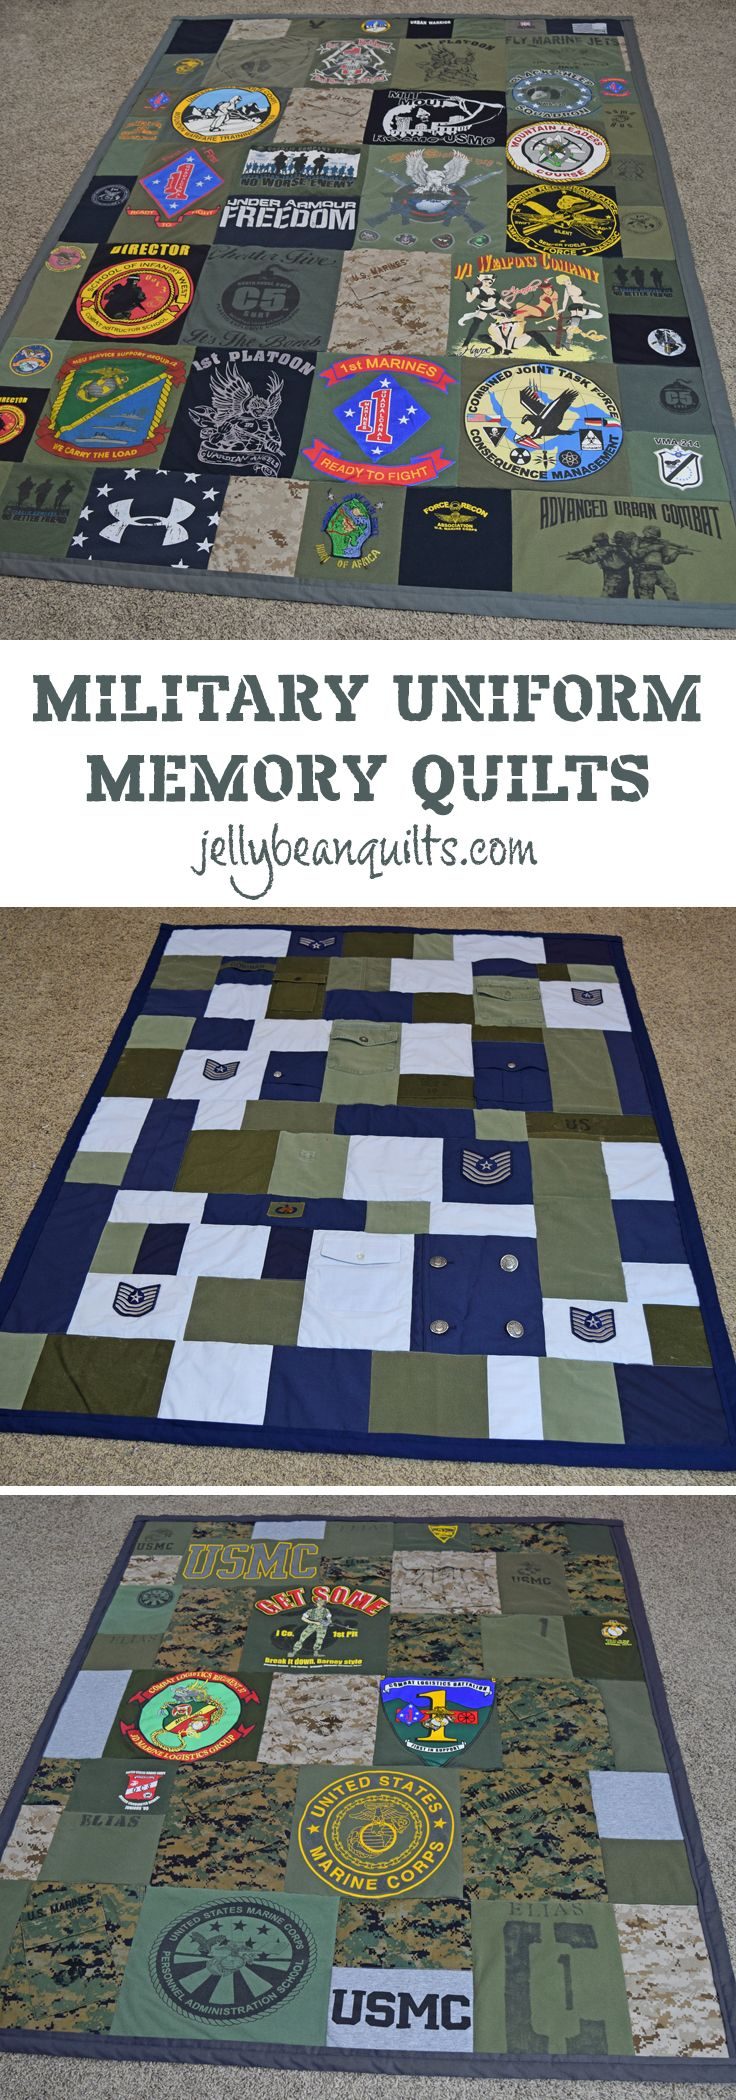 Military Quilts Military Uniform Quilts Military Memory Quilts From Army Navy Marine Uniforms Memory Quilt Military Crafts Military Diy